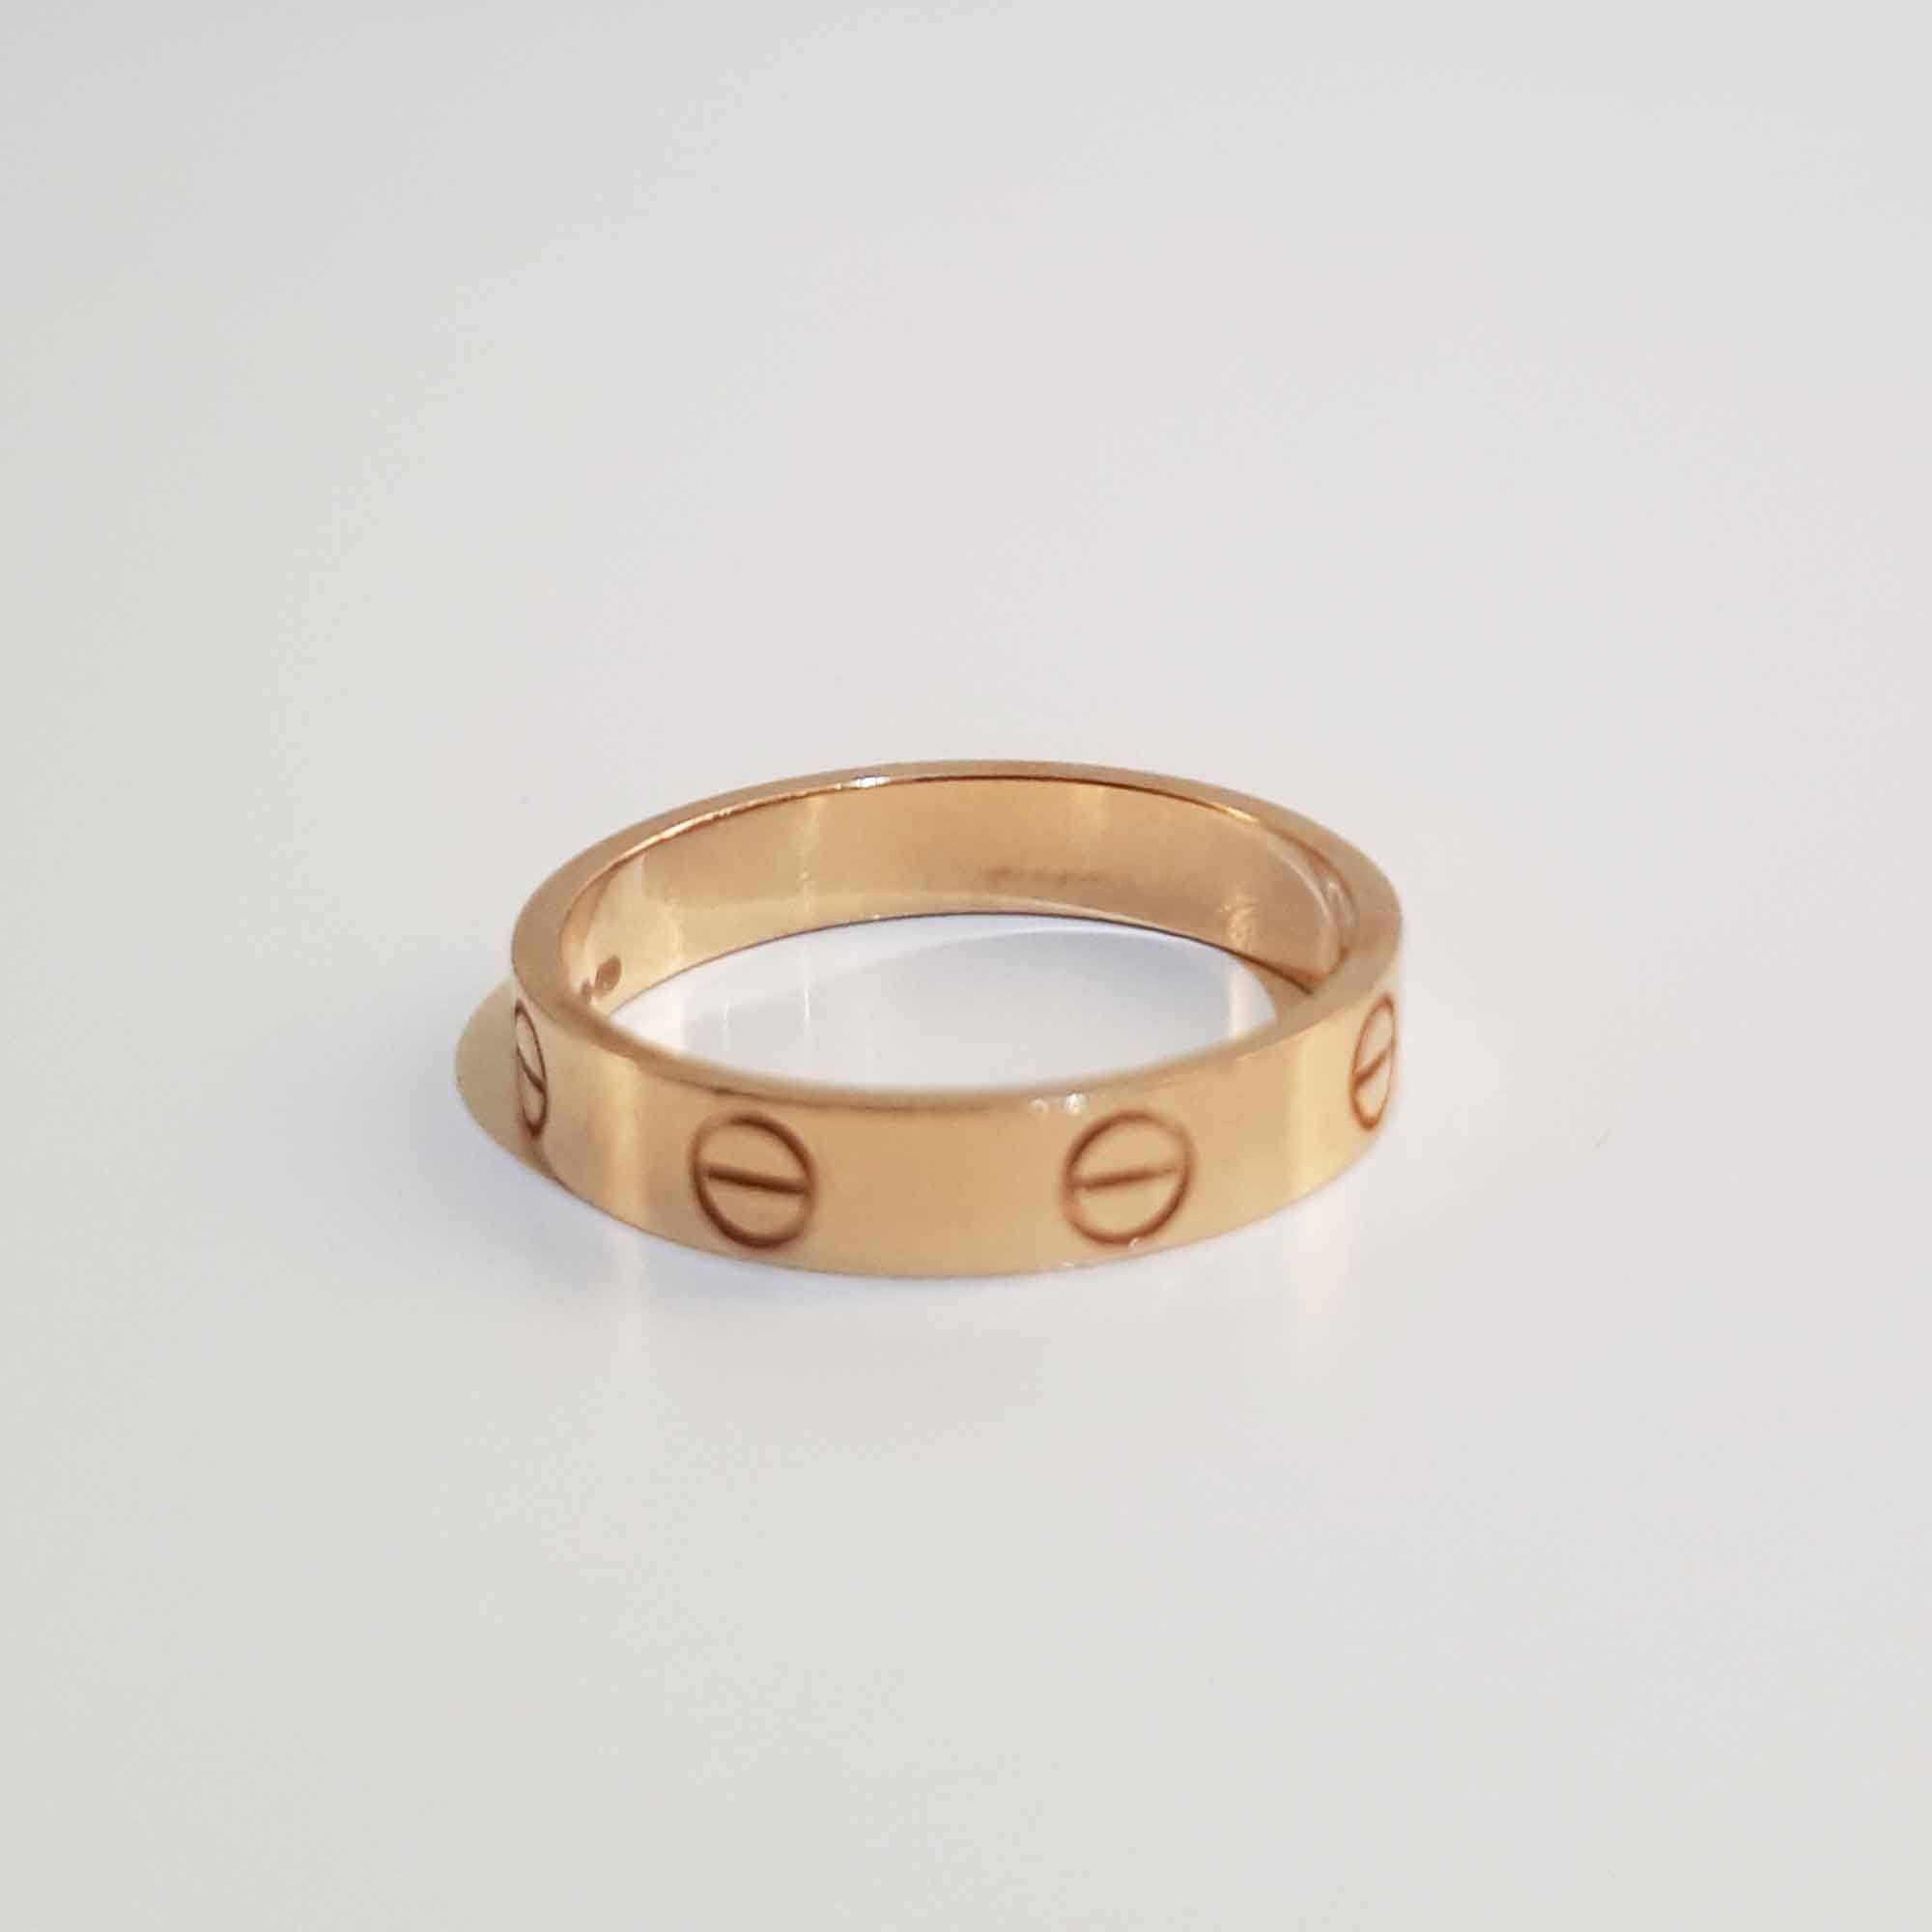 Cartier Love 18kt Gold Band Ring Size 54